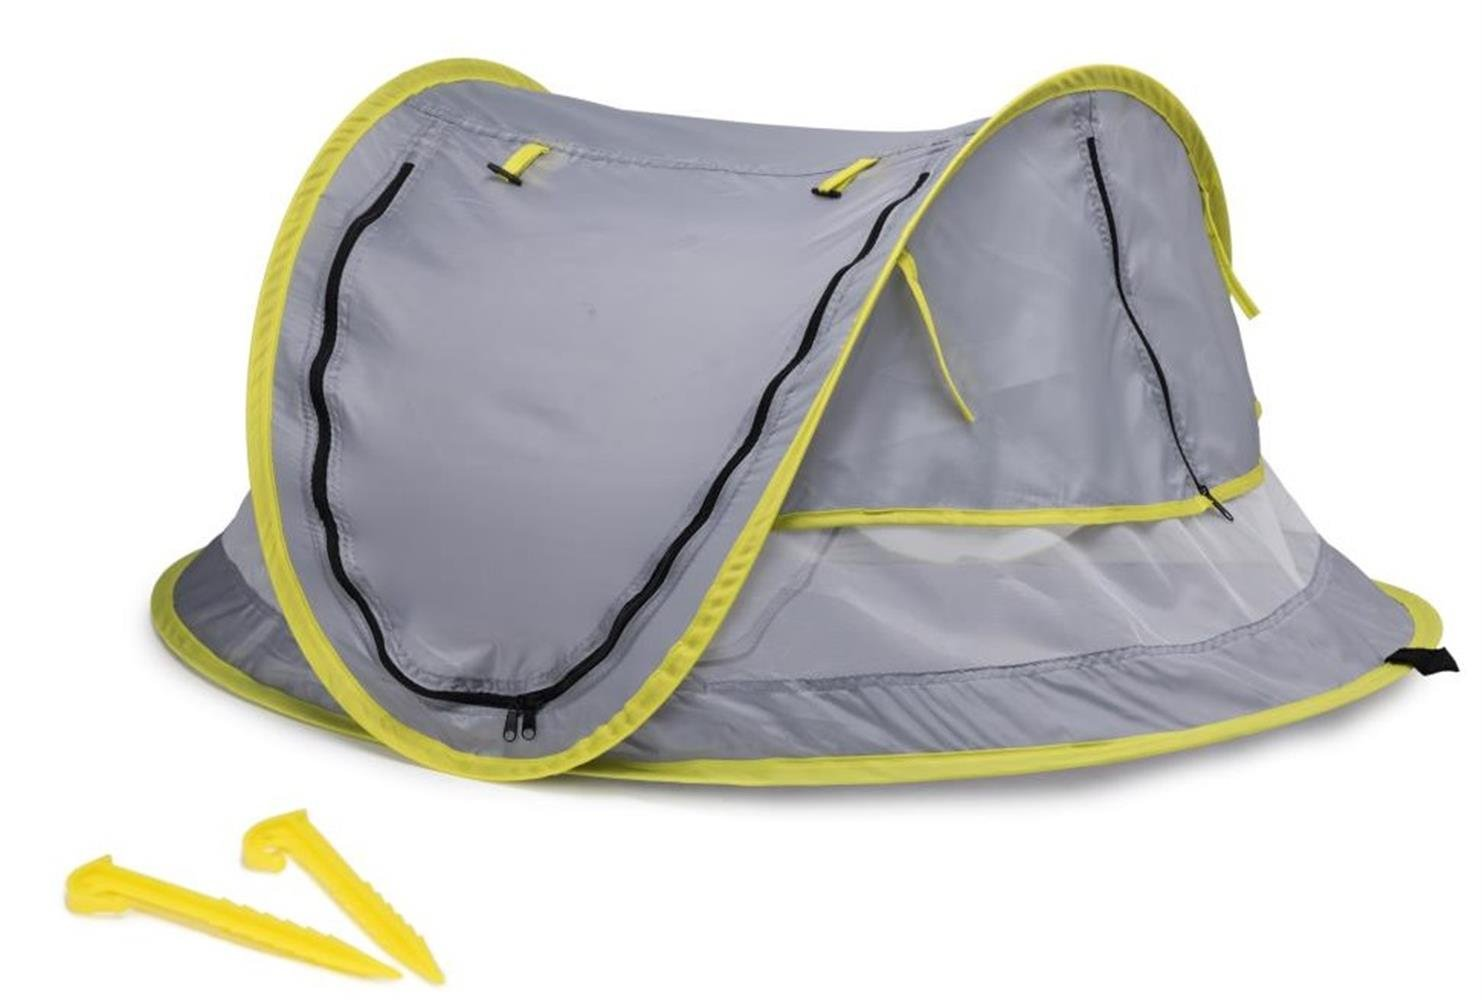 Hyindoor Baby Tent Portable Baby Travel Bed UPF 50+ Sun Travel Cribs Pop up Folding Beach Tent Mosquito Net